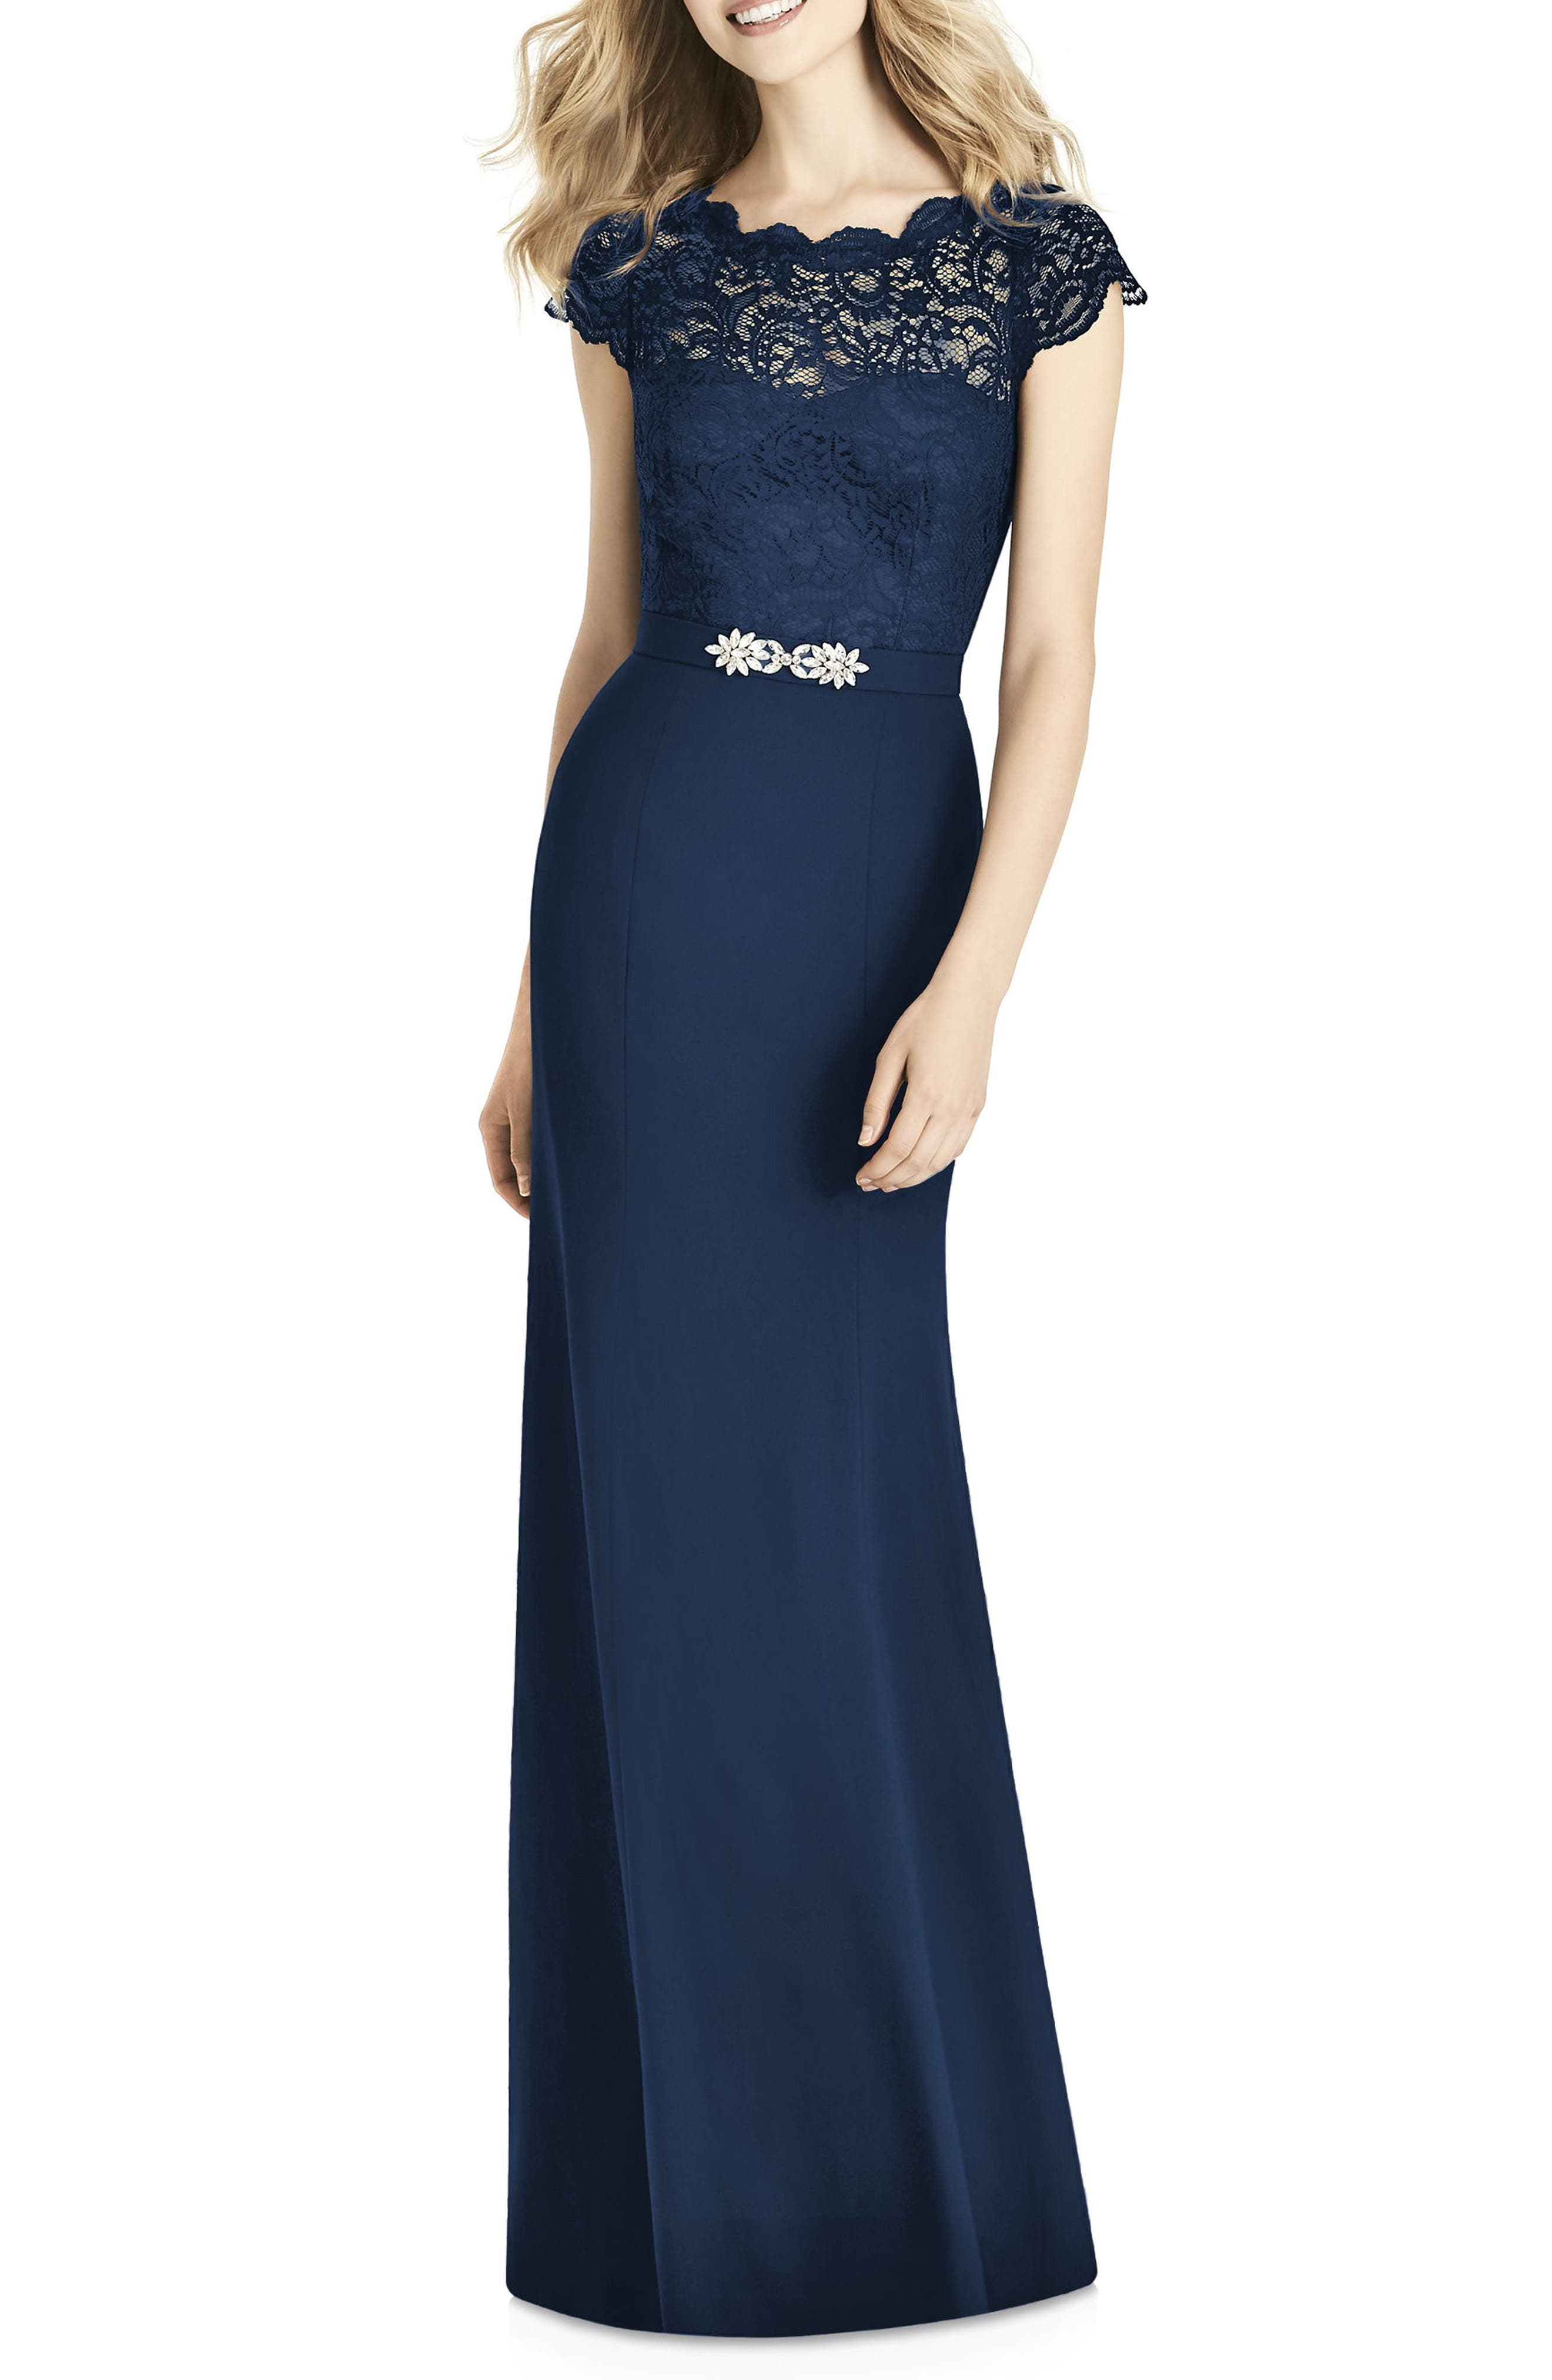 JENNY PACKHAM Lace & Crepe Sheath Gown, Main, color, MIDNIGHT